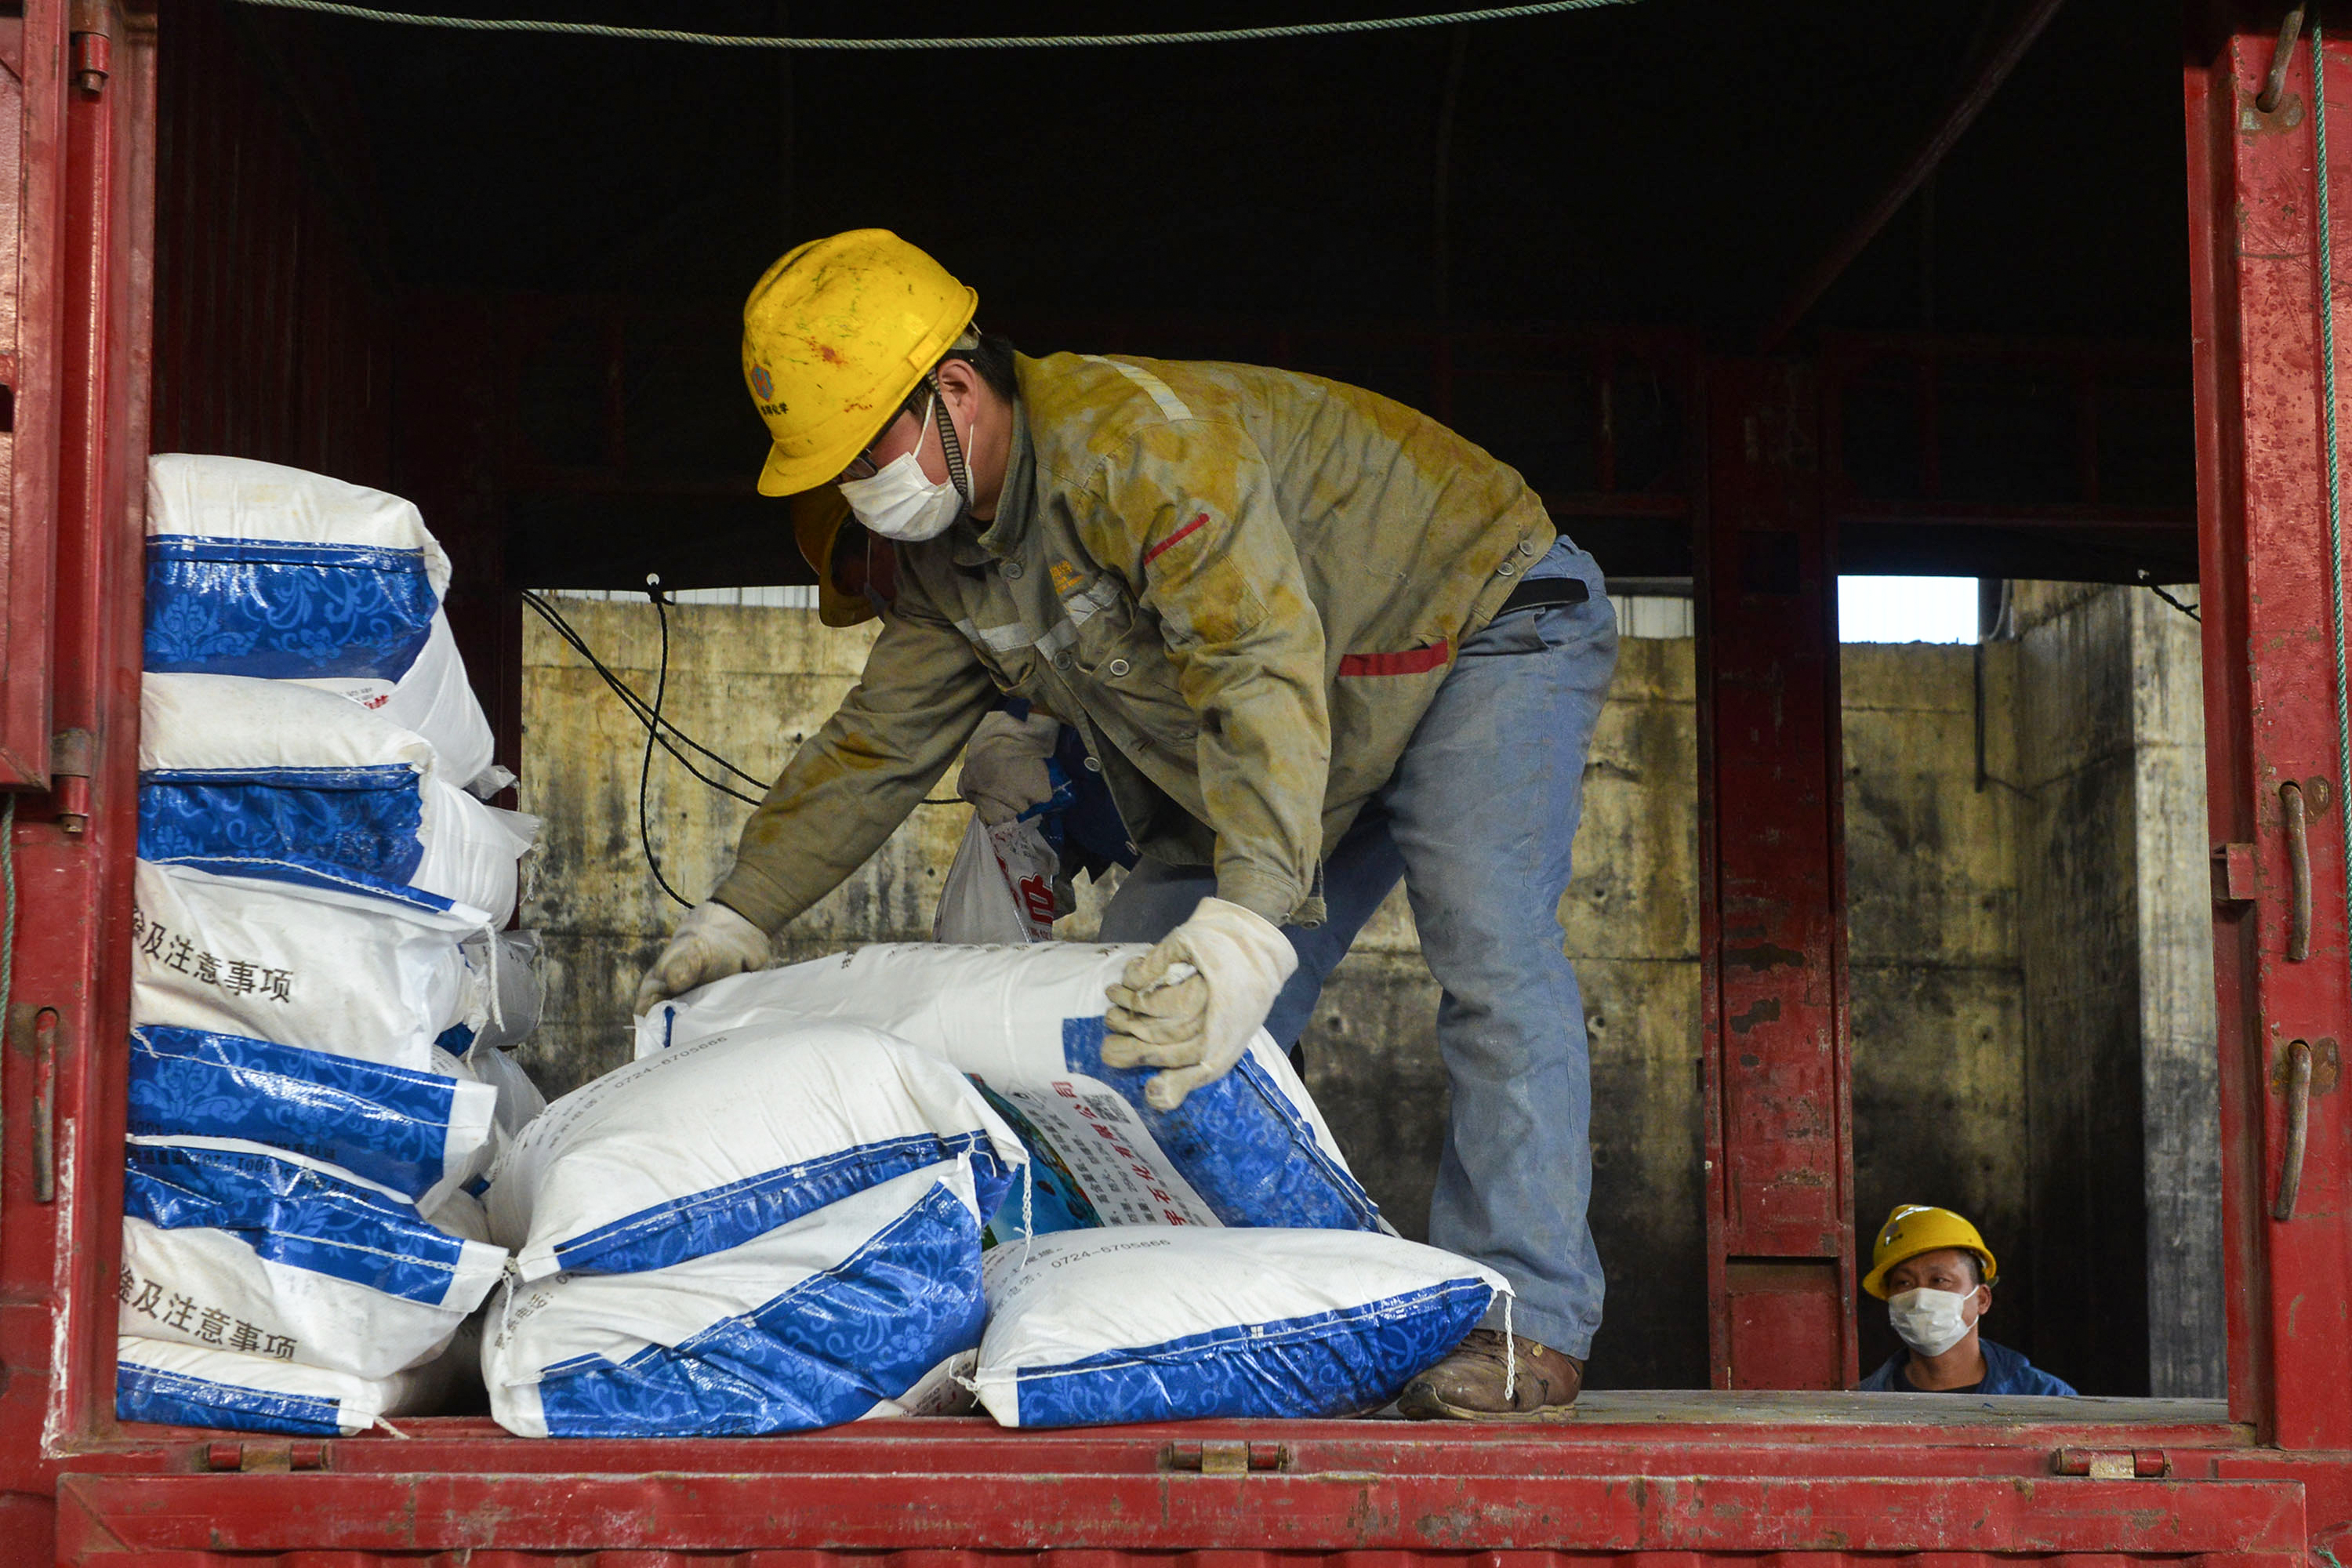 This photo taken on January 30, 2020 shows a worker transferring bags of disinfectant at a factory in Xiaogan in China's central Hubei province, to support the supply of medical materials during the virus outbreak in Hubei's city of Wuhan. - The nationwide death toll in China's coronavirus outbreak has risen to 213, with nearly 2,000 new cases confirmed, the National Health Commission said on January 31. (Photo by STR / AFP) / China OUT (Photo by STR/AFP via Getty Images)